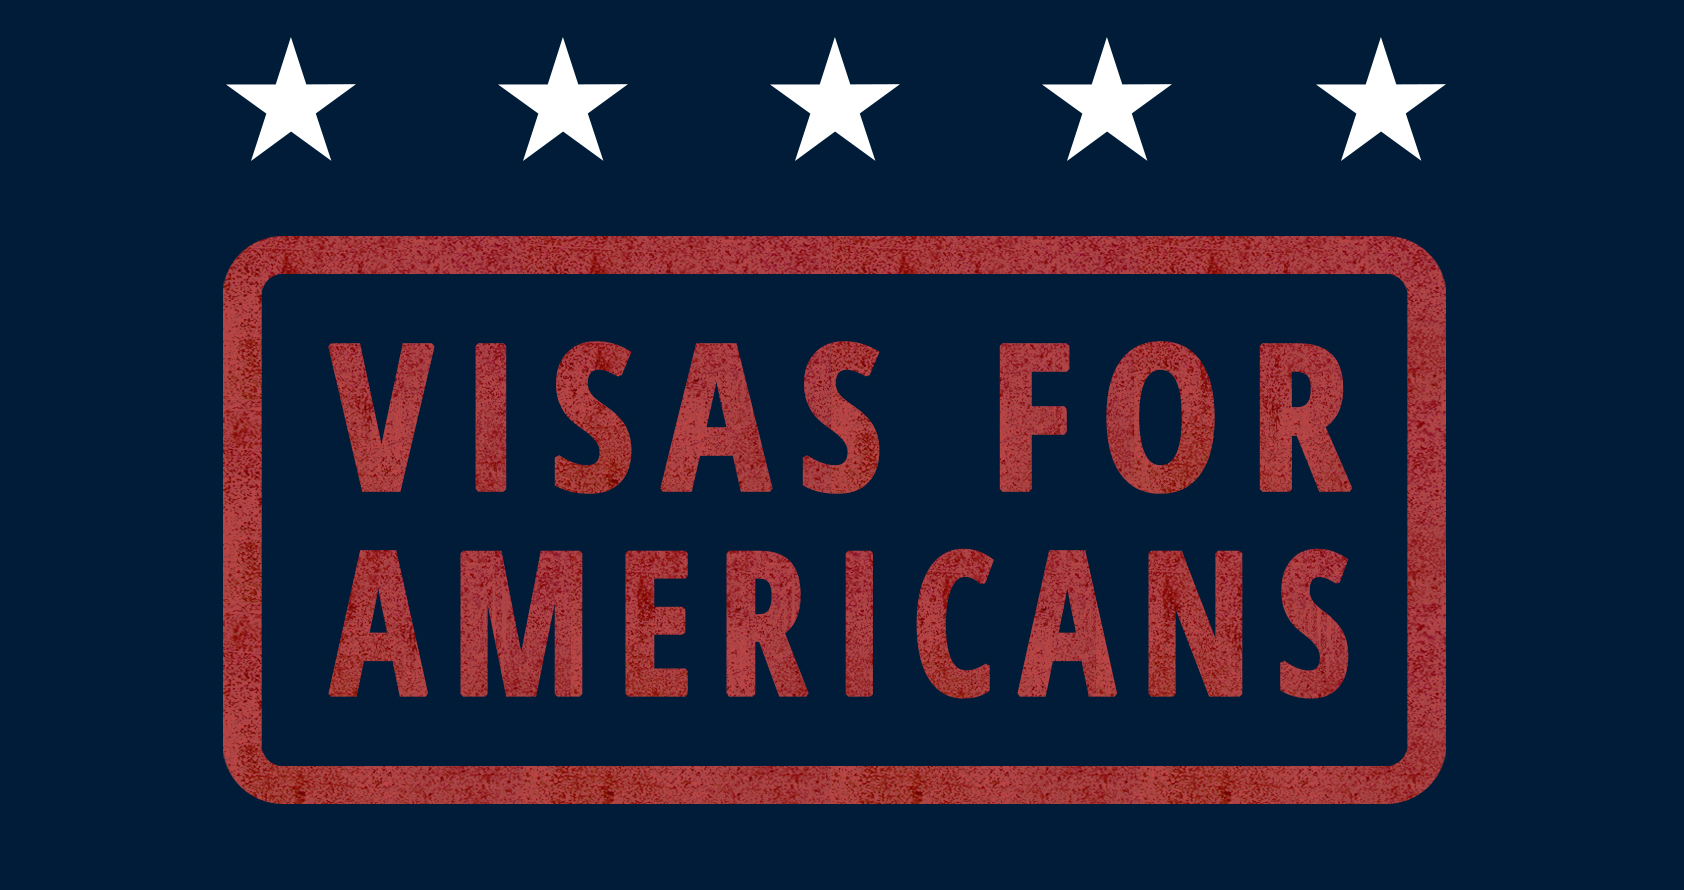 Get a visa with Visas For Americans